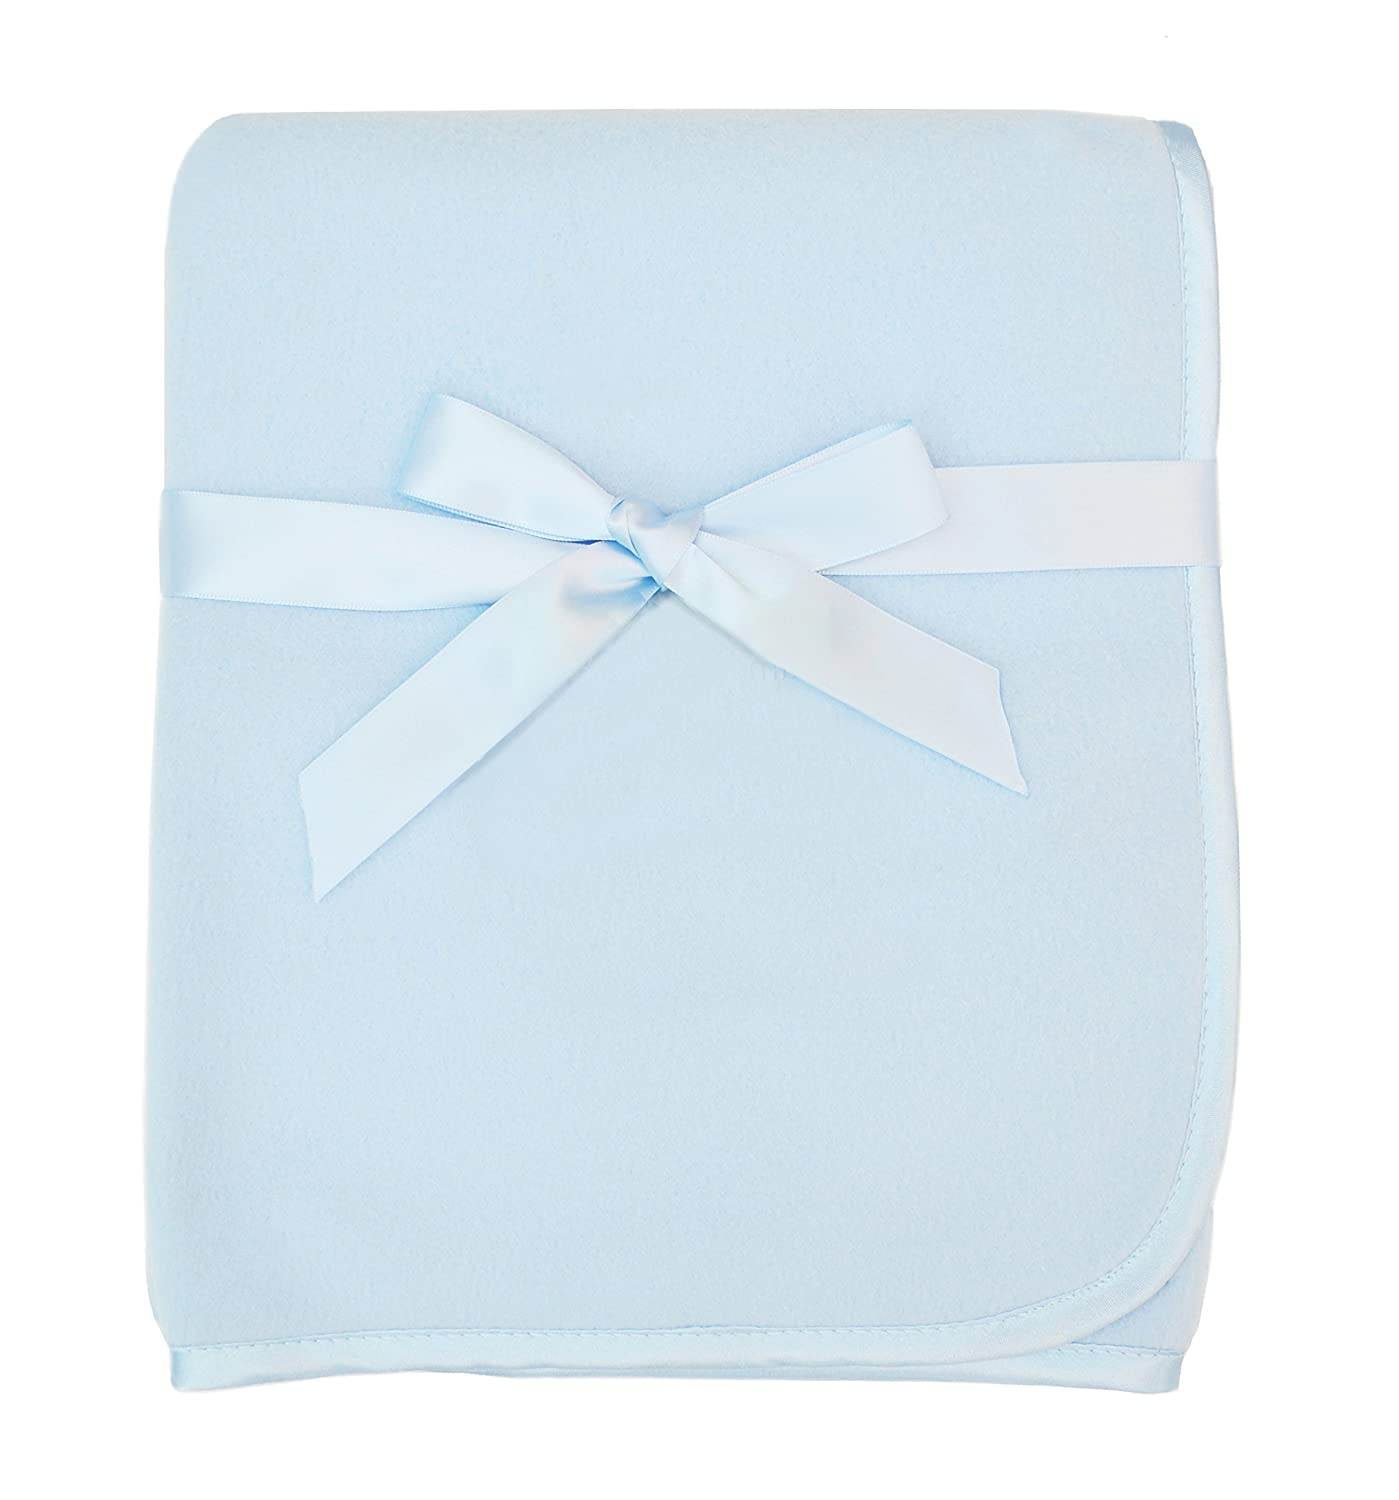 American Baby Company Fleece Blanket 30 x 30 White for Boys and Girls